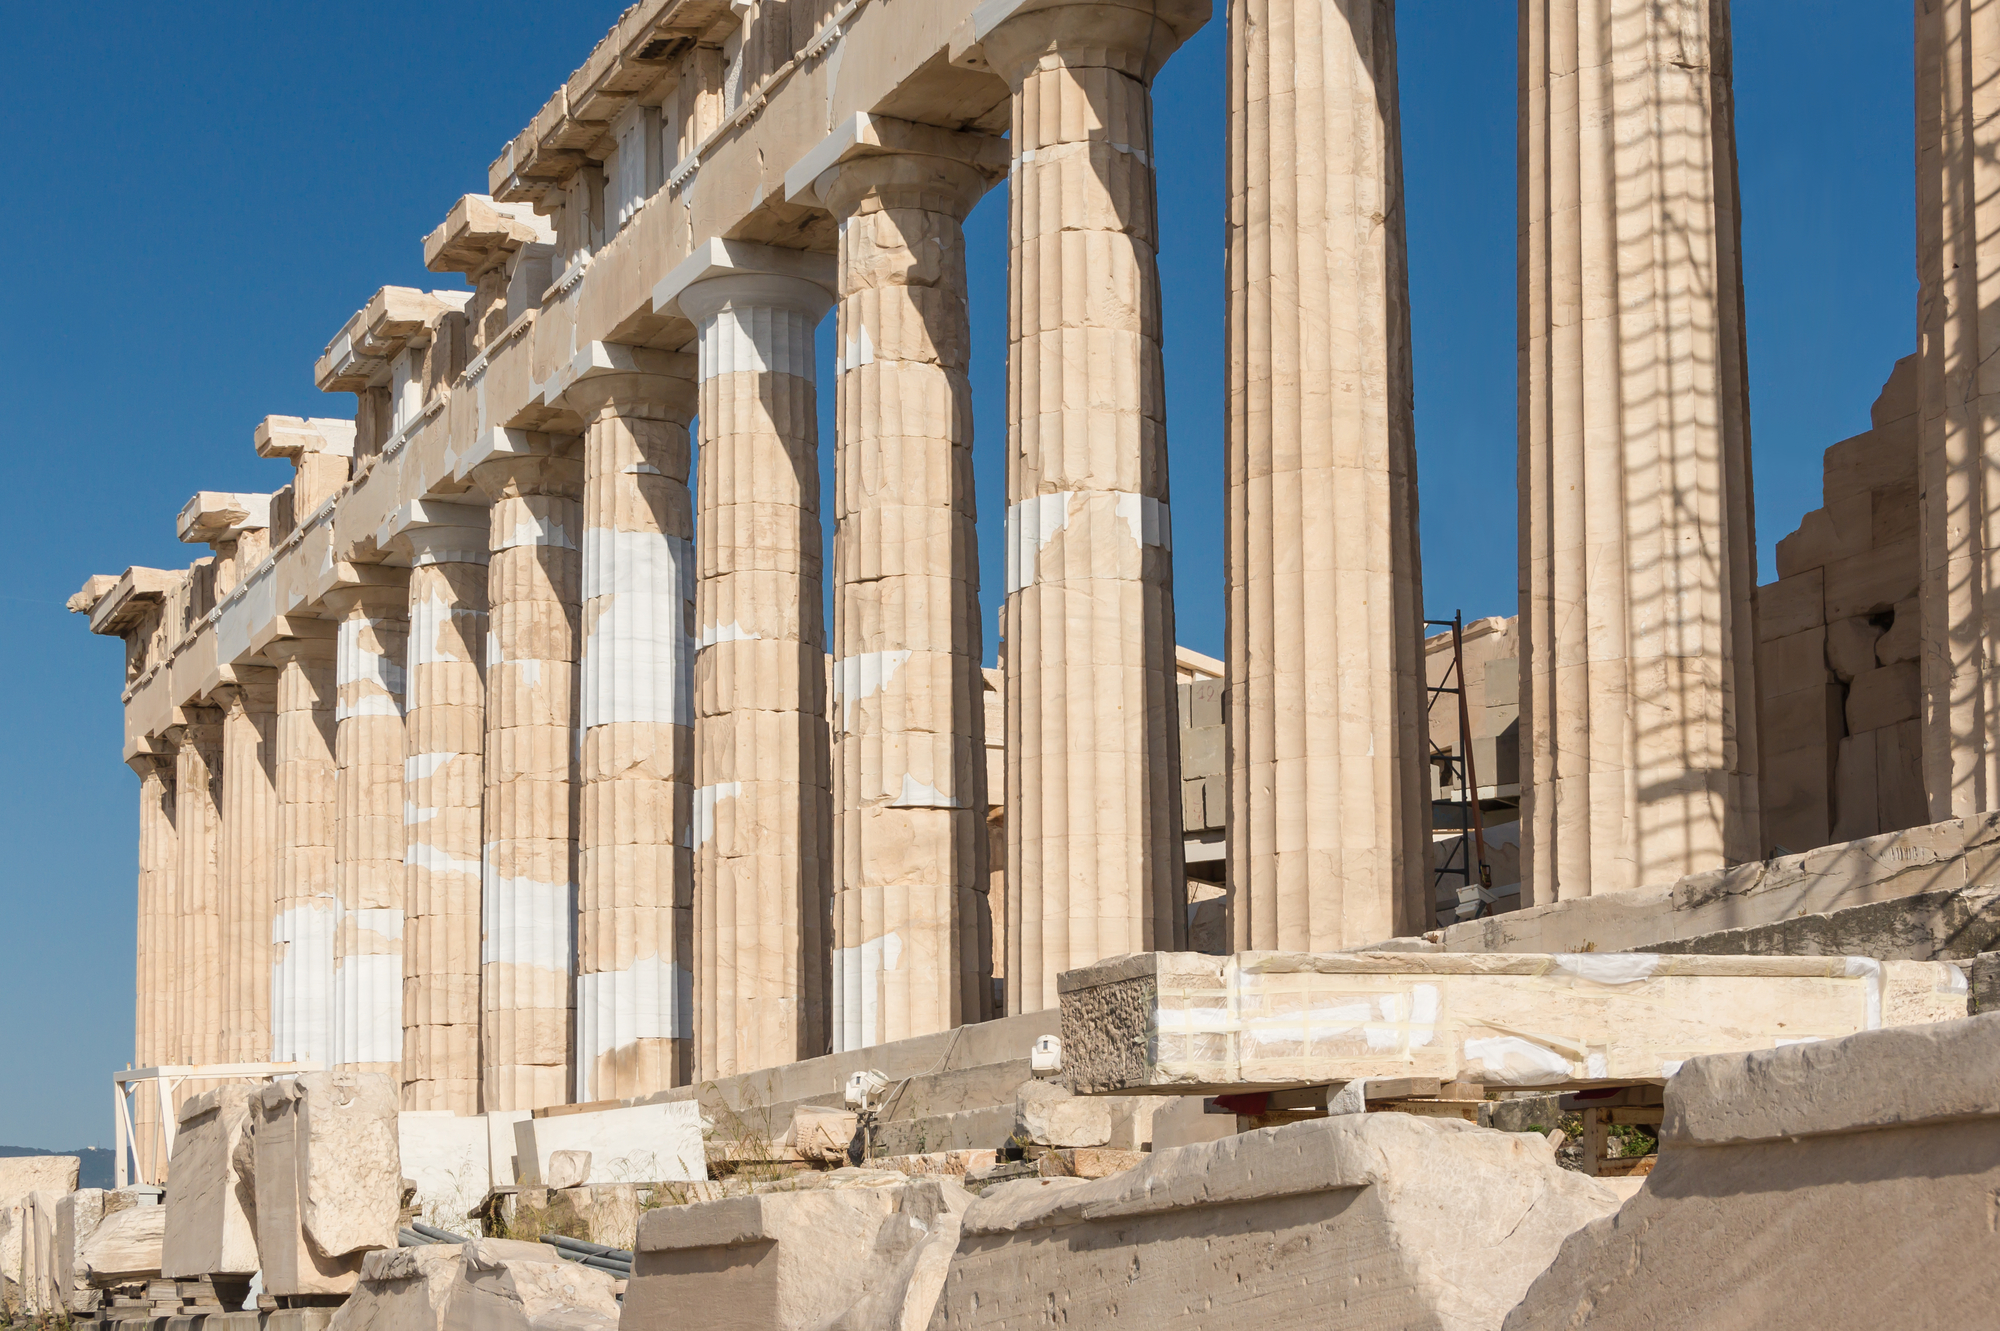 The Parthenons Columns Being Narrower Than Typical Doric Proportions Dictated Served To Reduce